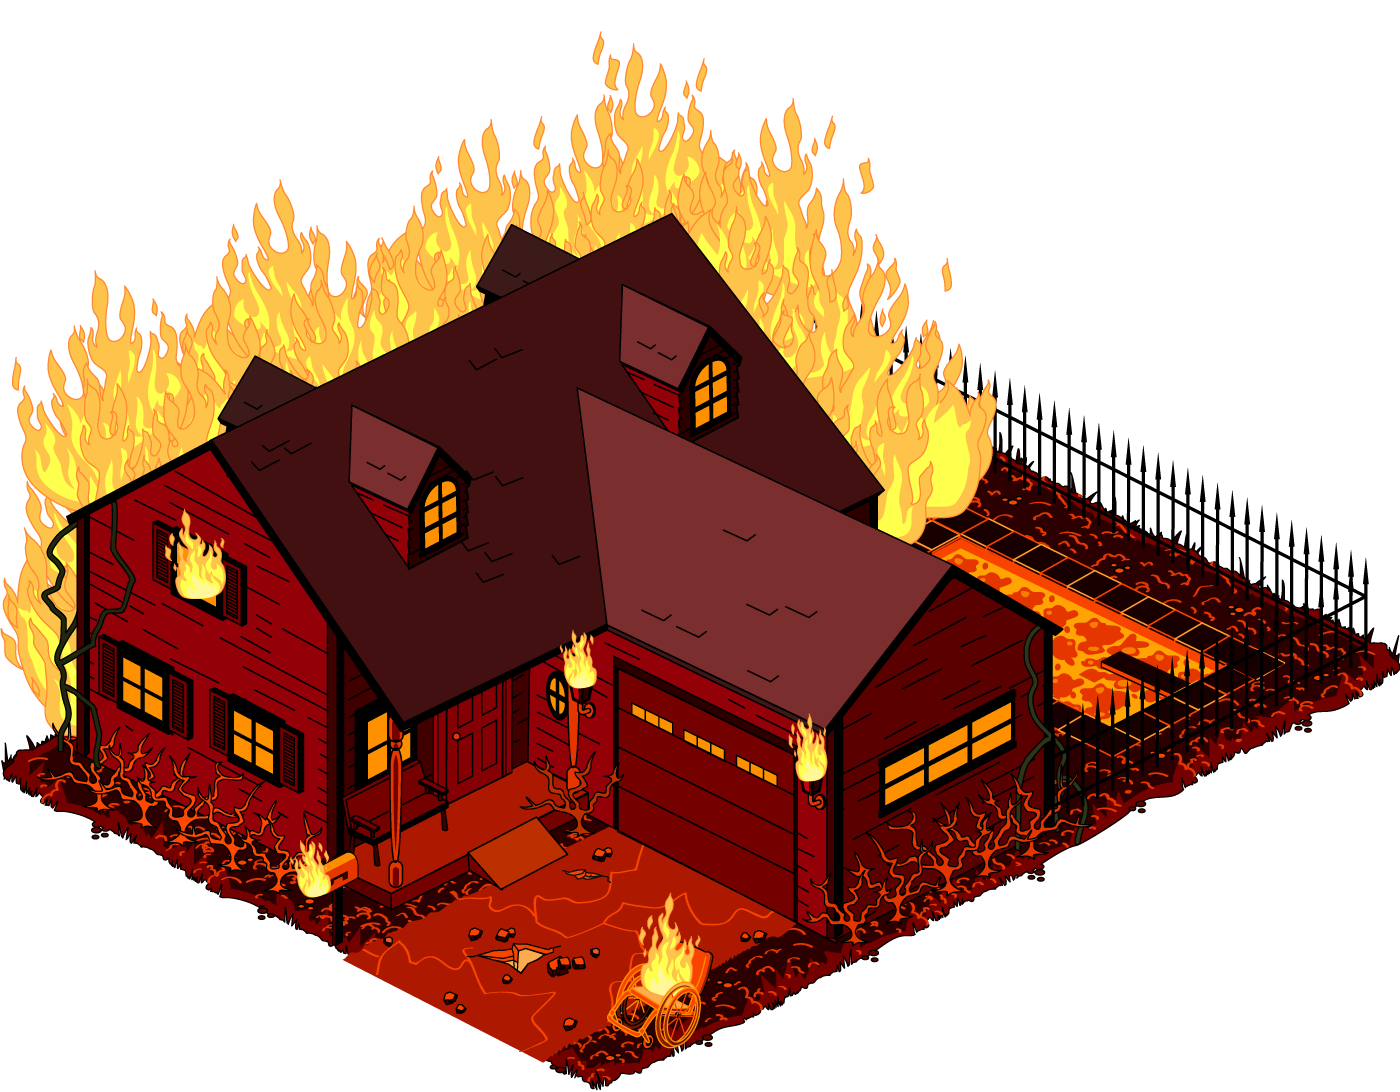 Building on fire png. Image swansonhouse brimstone family